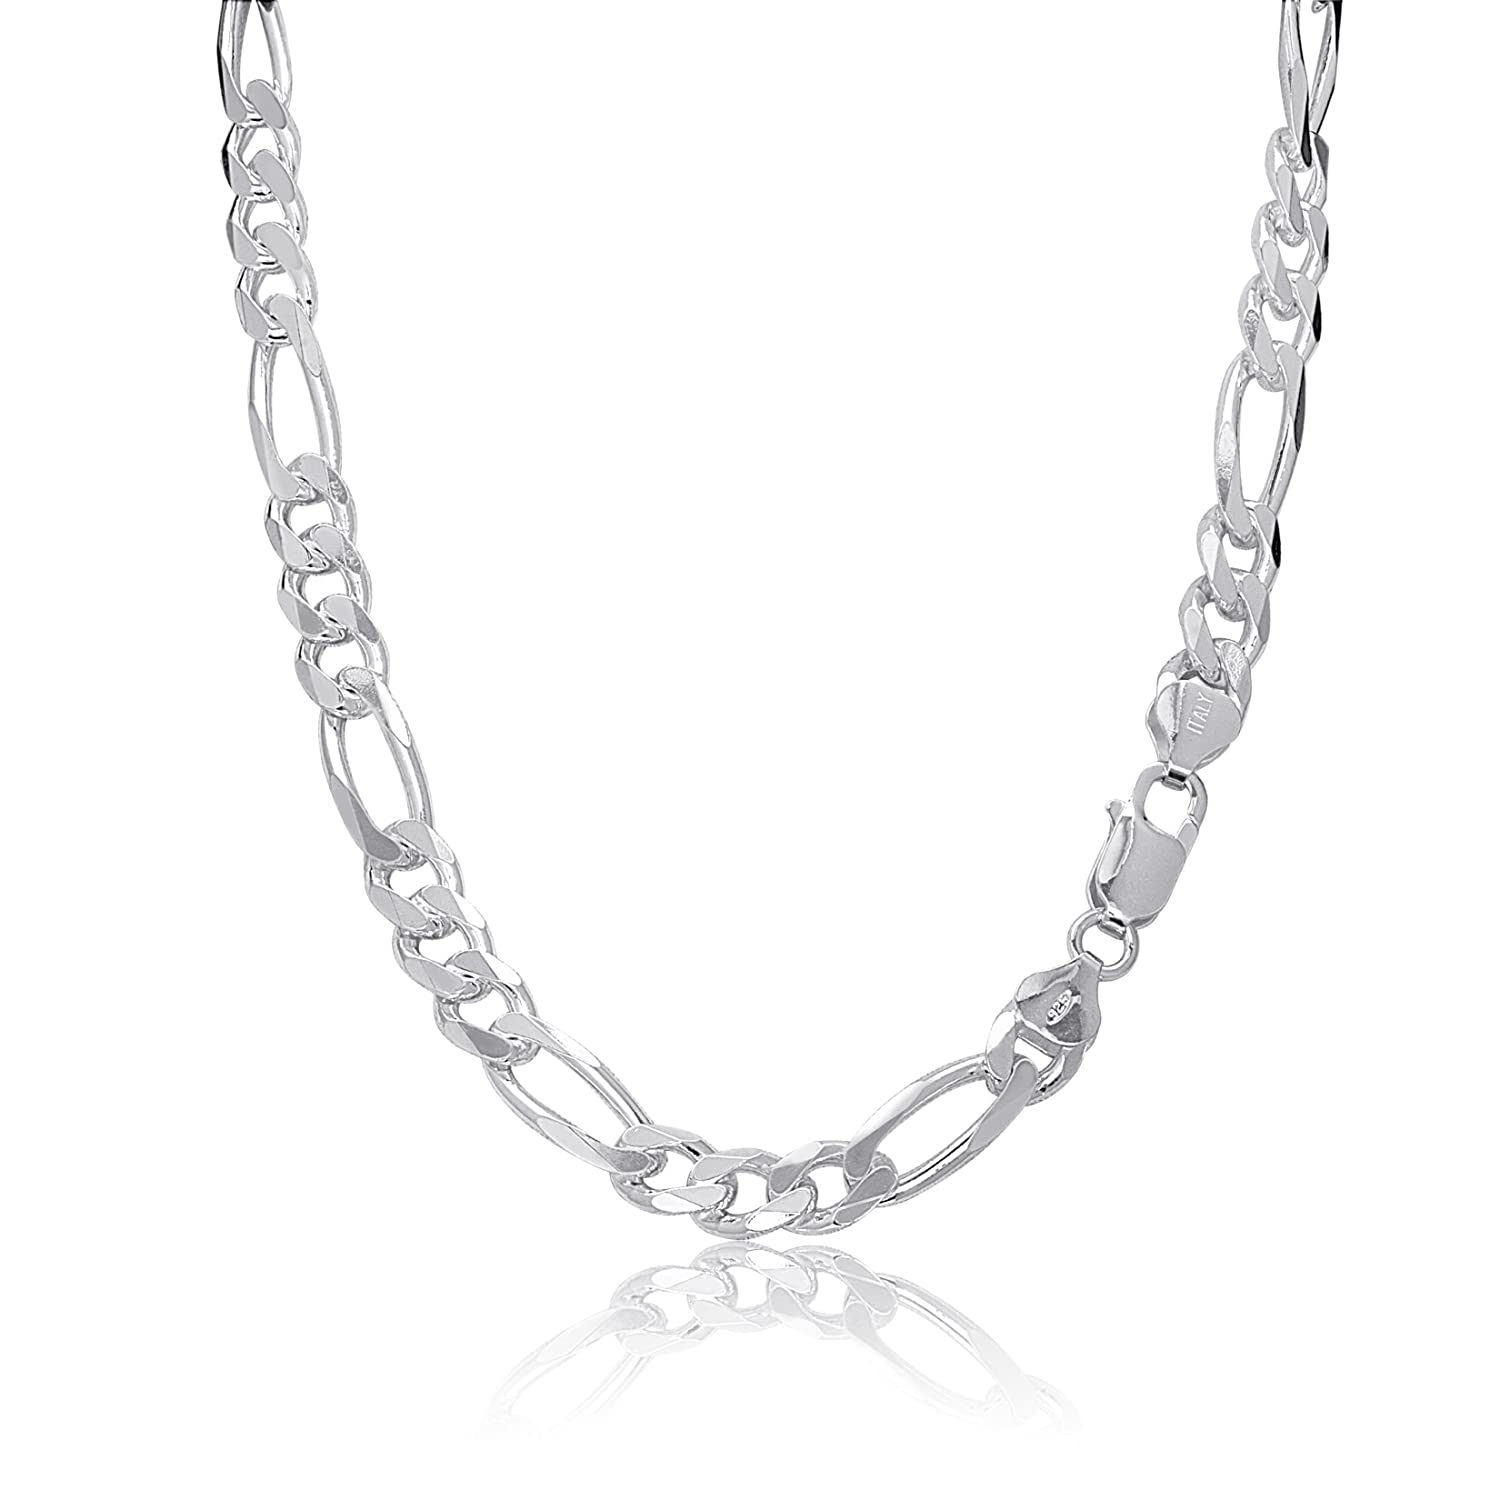 KEZEF Creations Sterling Silver Figaro Chain Necklace or Bracelet 7mm Italy